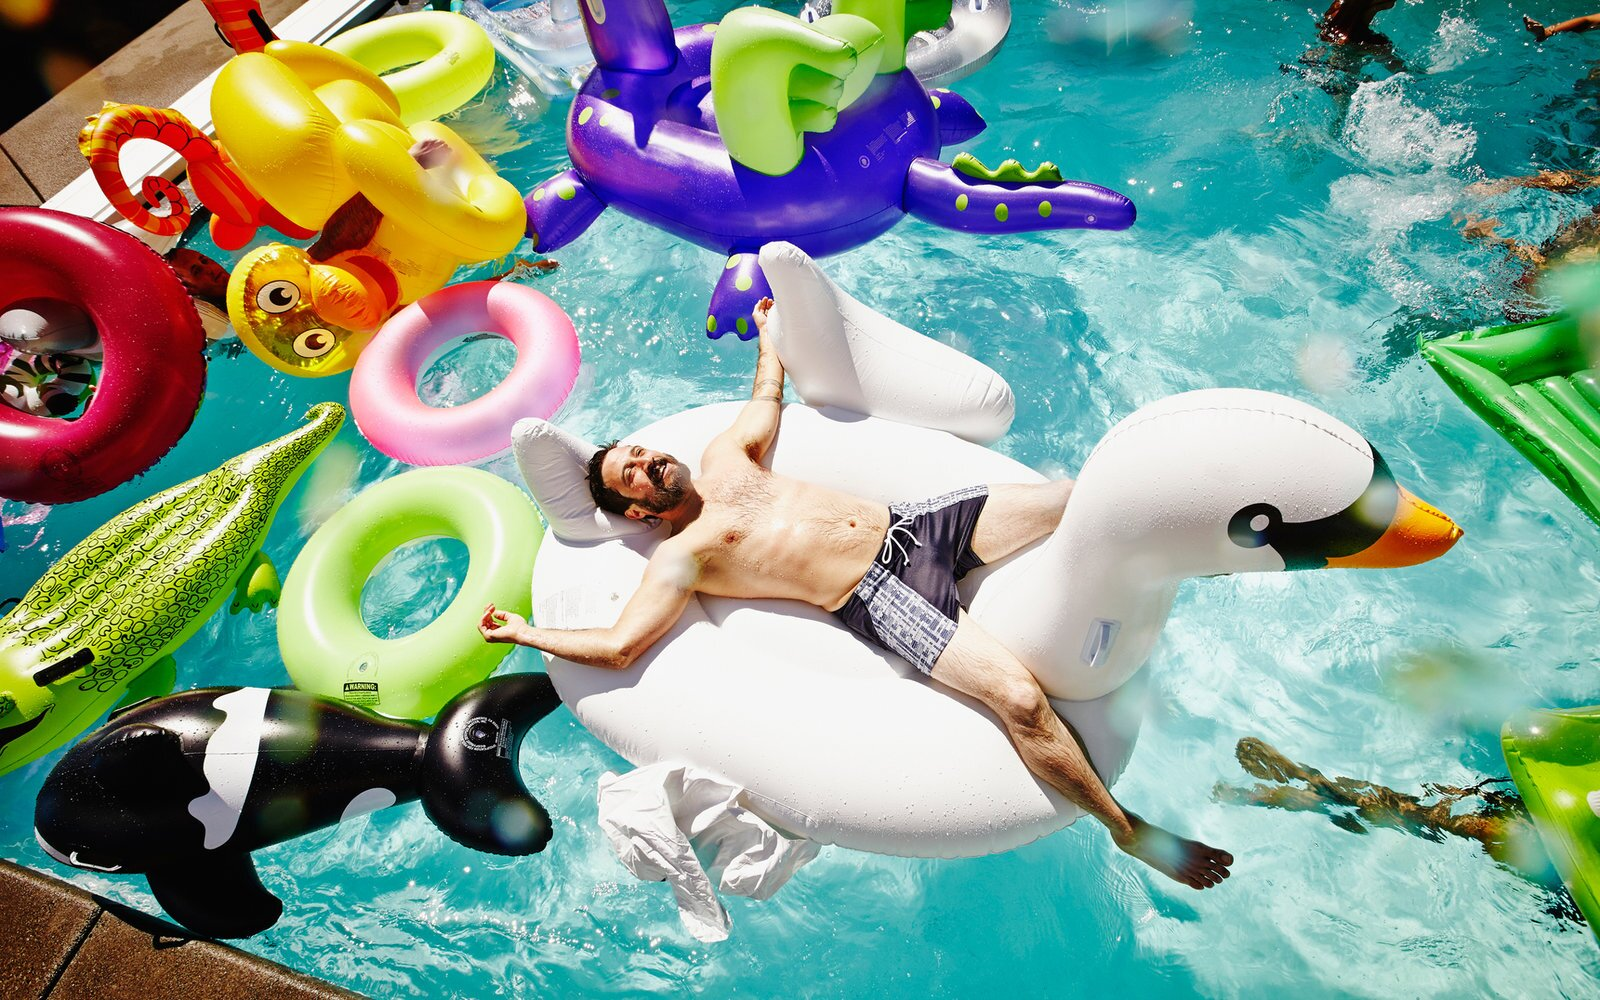 68782c612d 23 Best Pool Floats - Unicorns, Swans, Donuts + More | Travel + Leisure